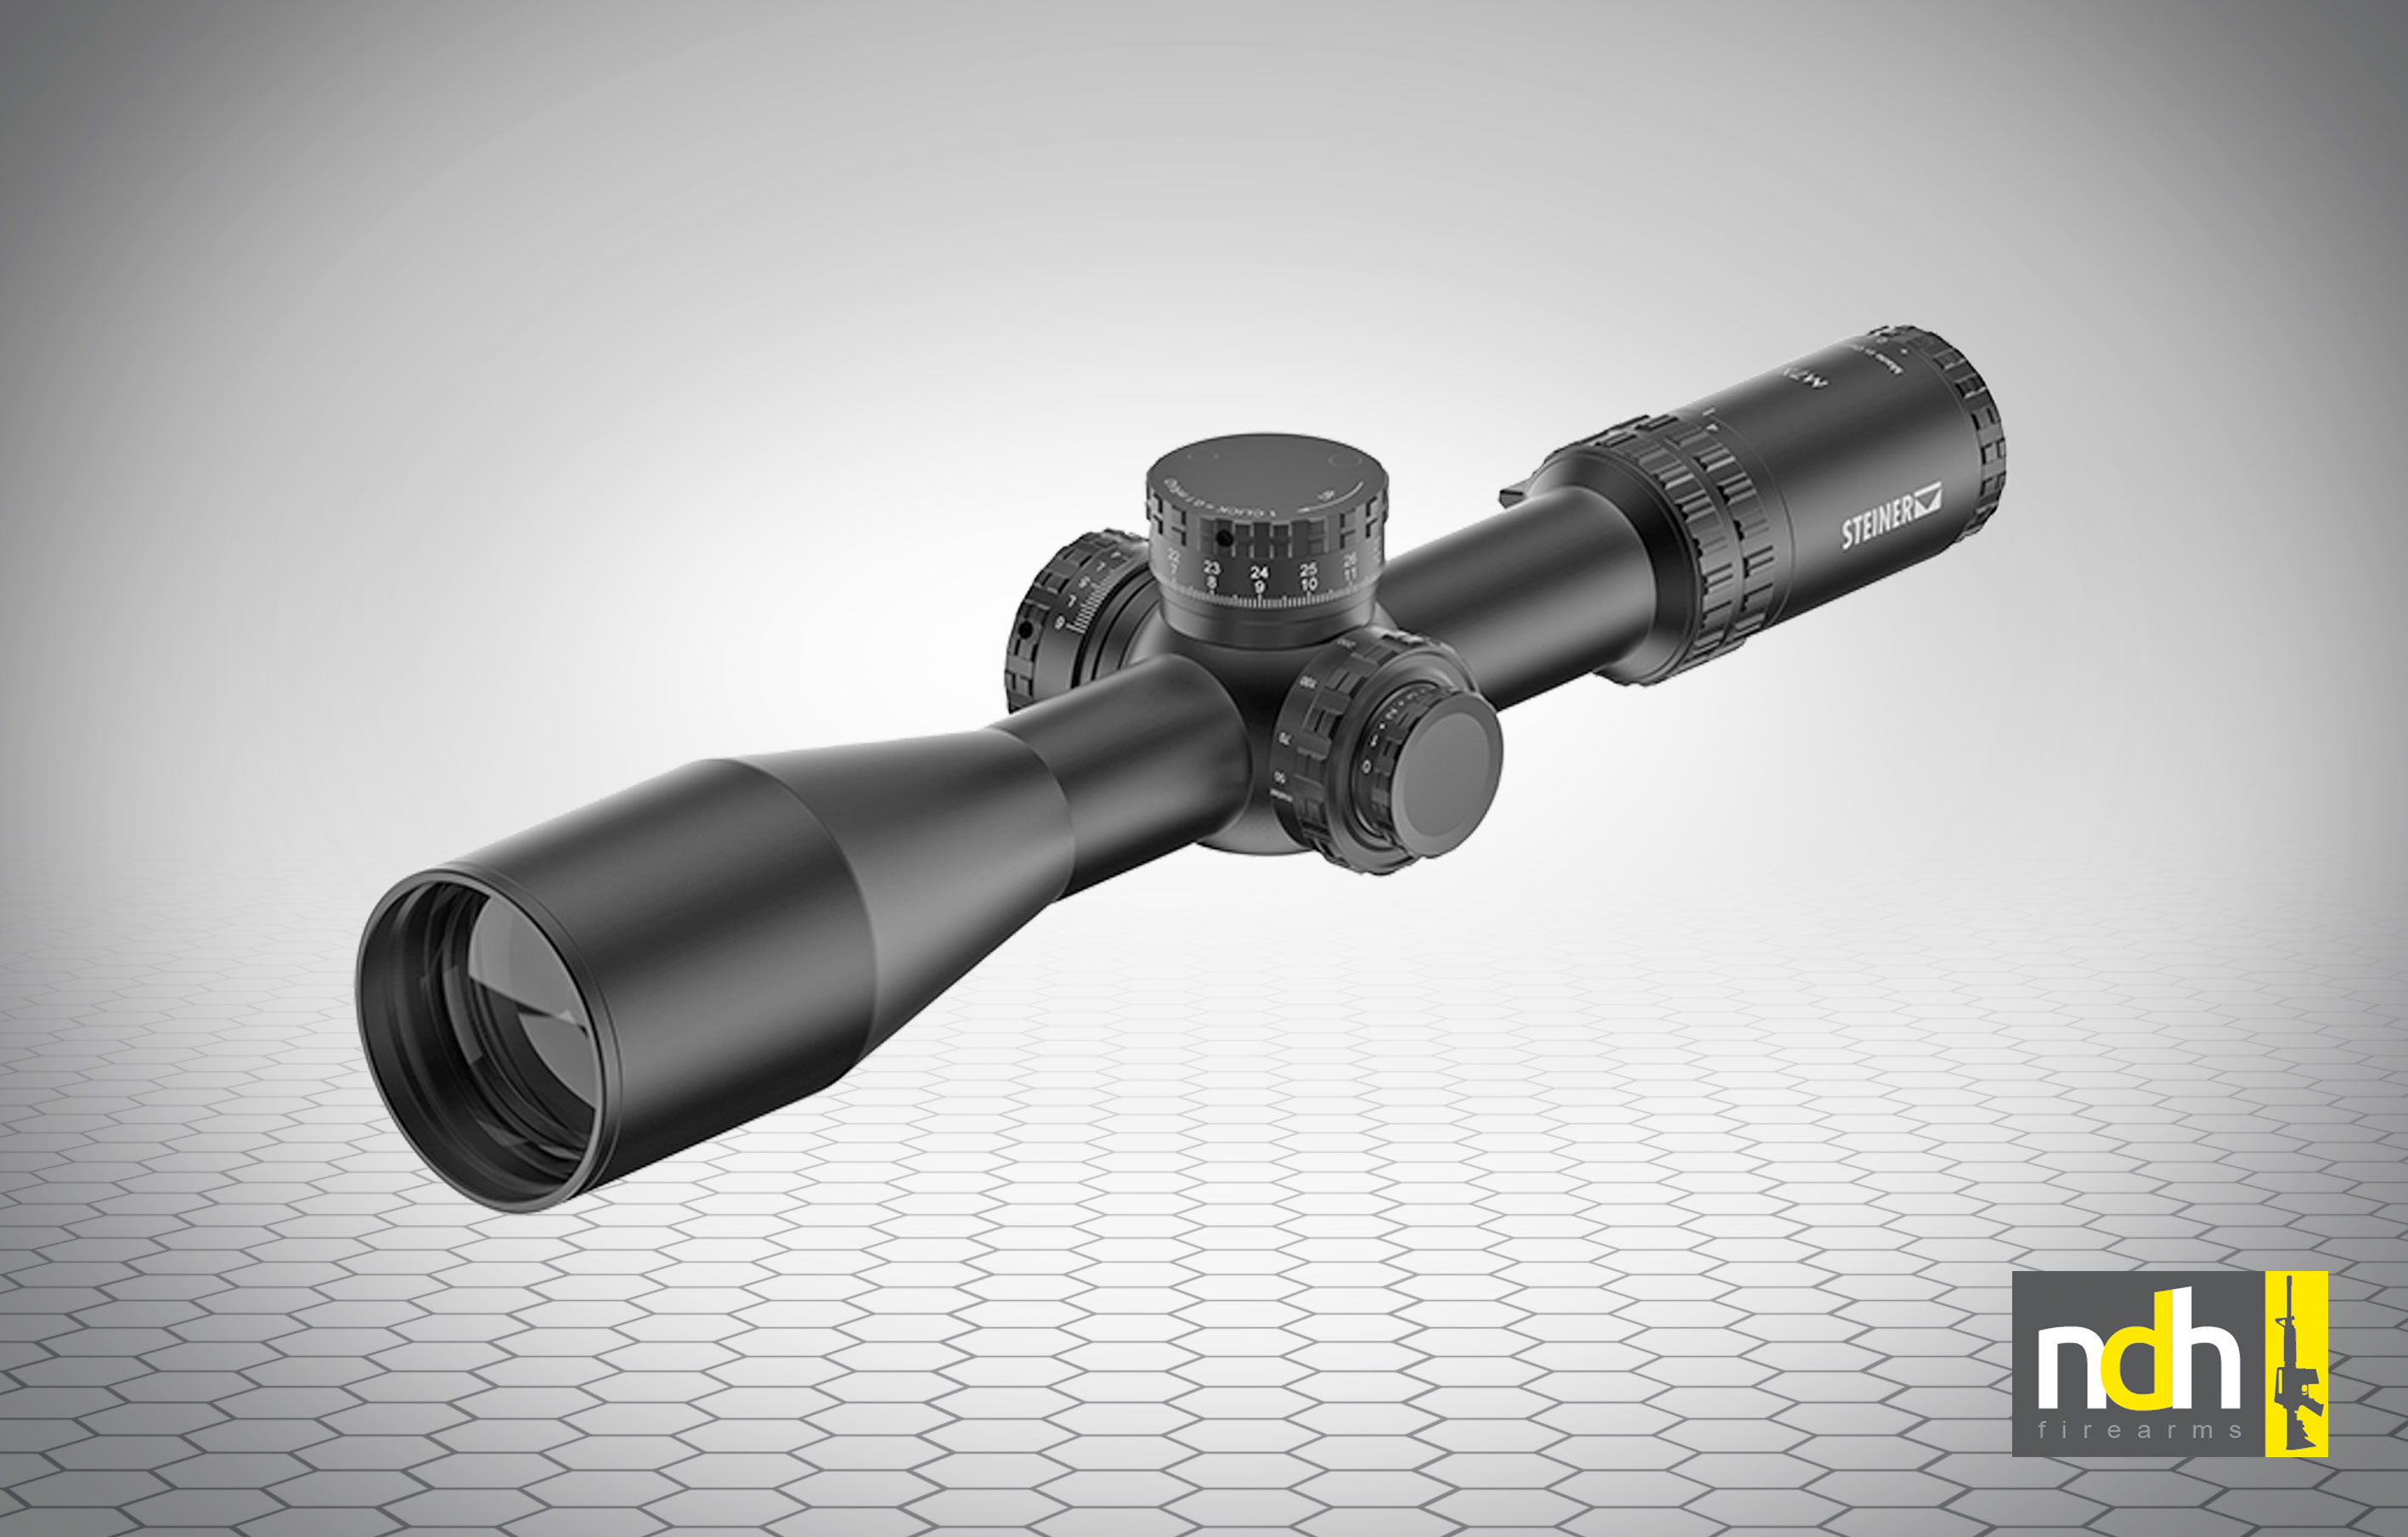 steiner-m7xi-4-28x56-tremor-3-military-tactical-scope